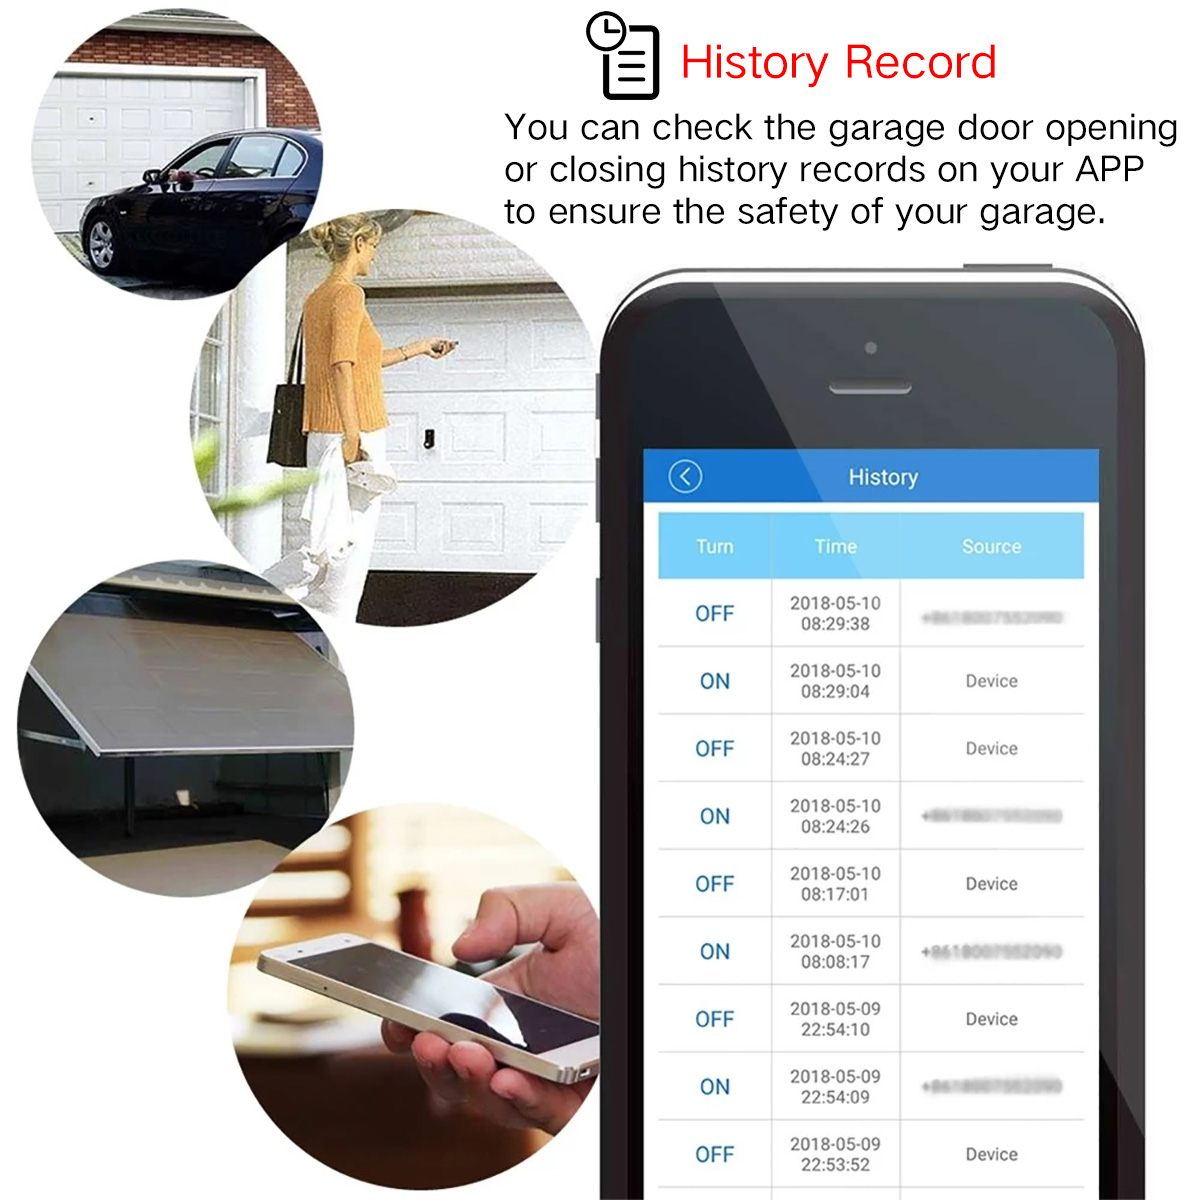 H958f6ef8bc0c4a03bd8e51817c001d94i 1Set WiFi Switch Smart Home Garage Door Opener Controller For eWeLink APP Phone Voice Control for Amazon Alexa for Google Home